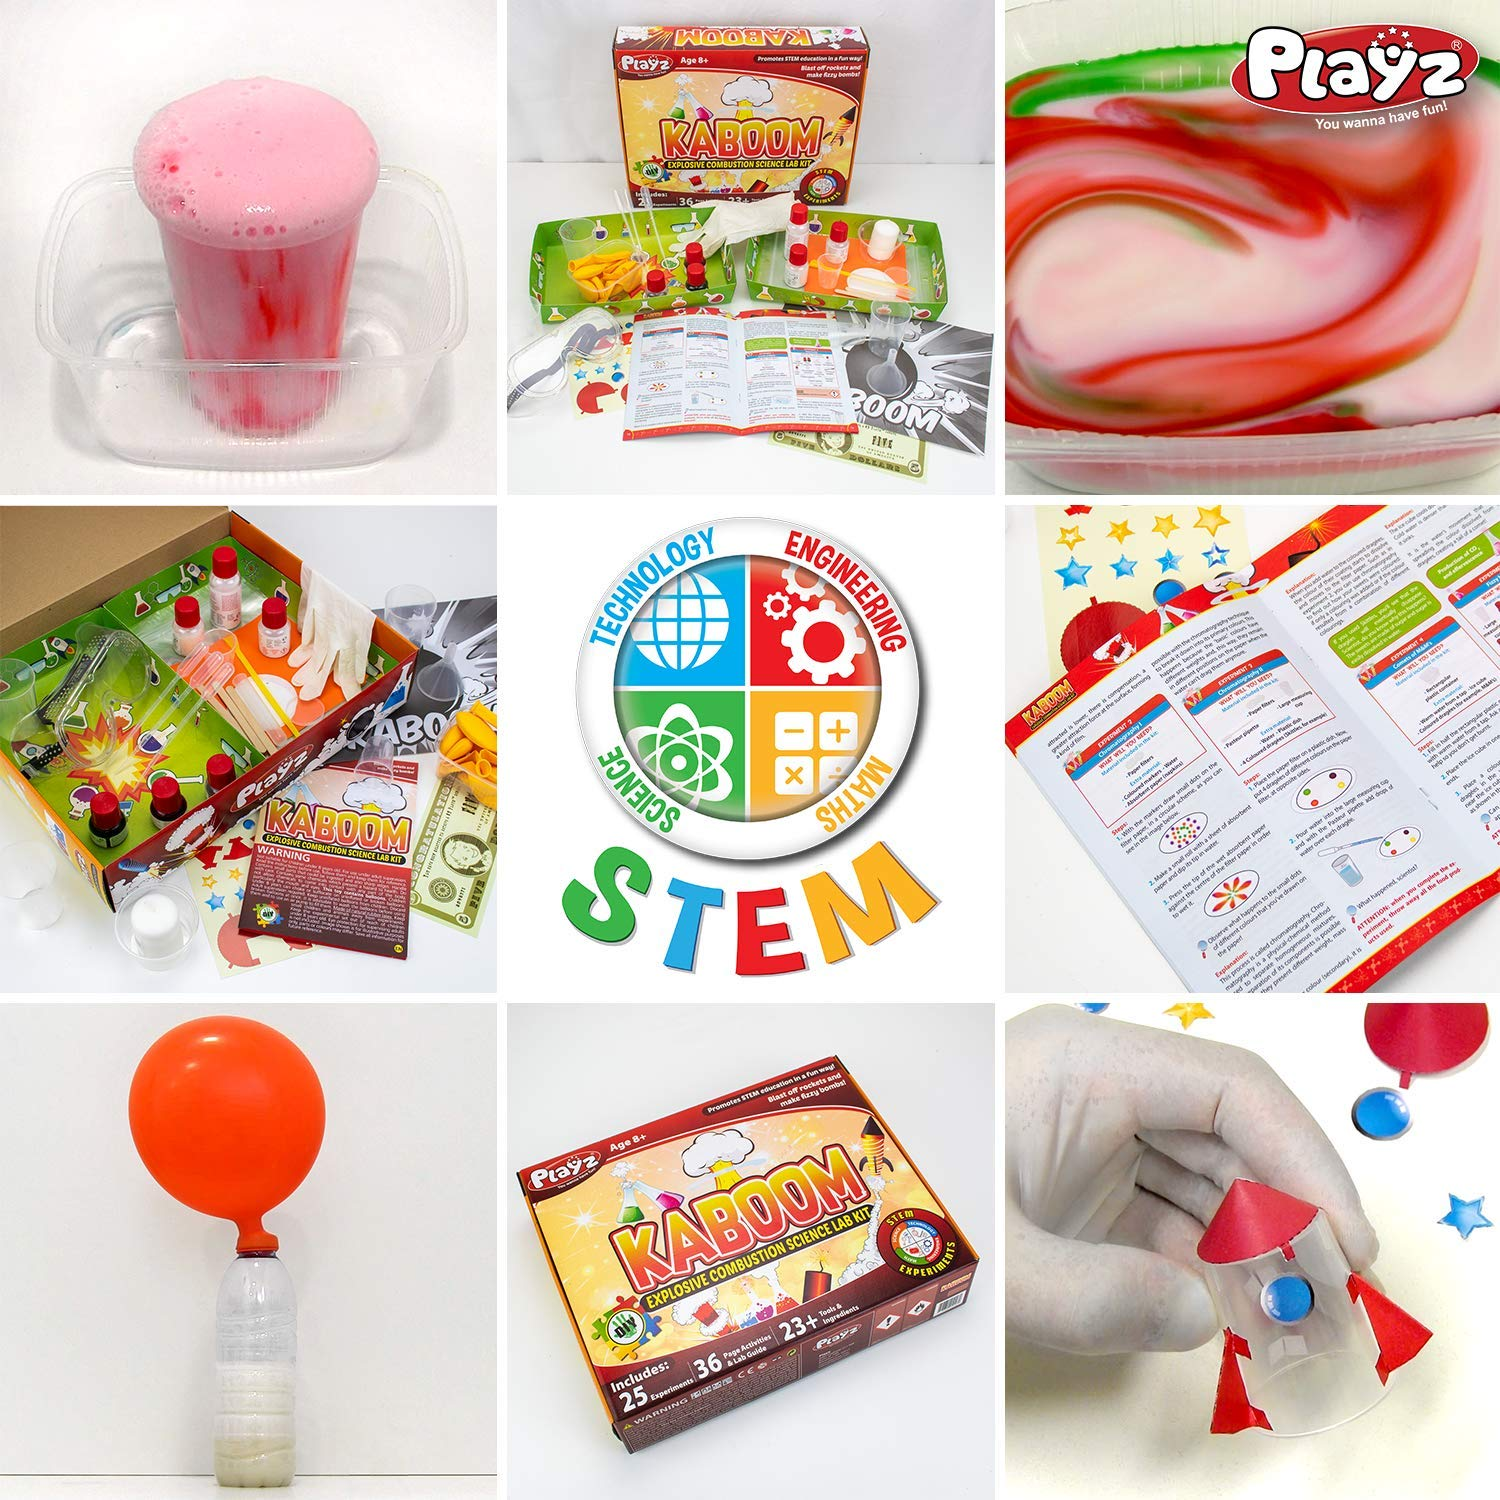 Playz Kaboom! Explosive Combustion Science Lab Kit - 25+ STEM Experiments - DIY Make Your Own Rockets, Helium Balloons, Fizzy Bombs, Color Explosions and More with Fun Chemical Reactions! by Playz (Image #6)